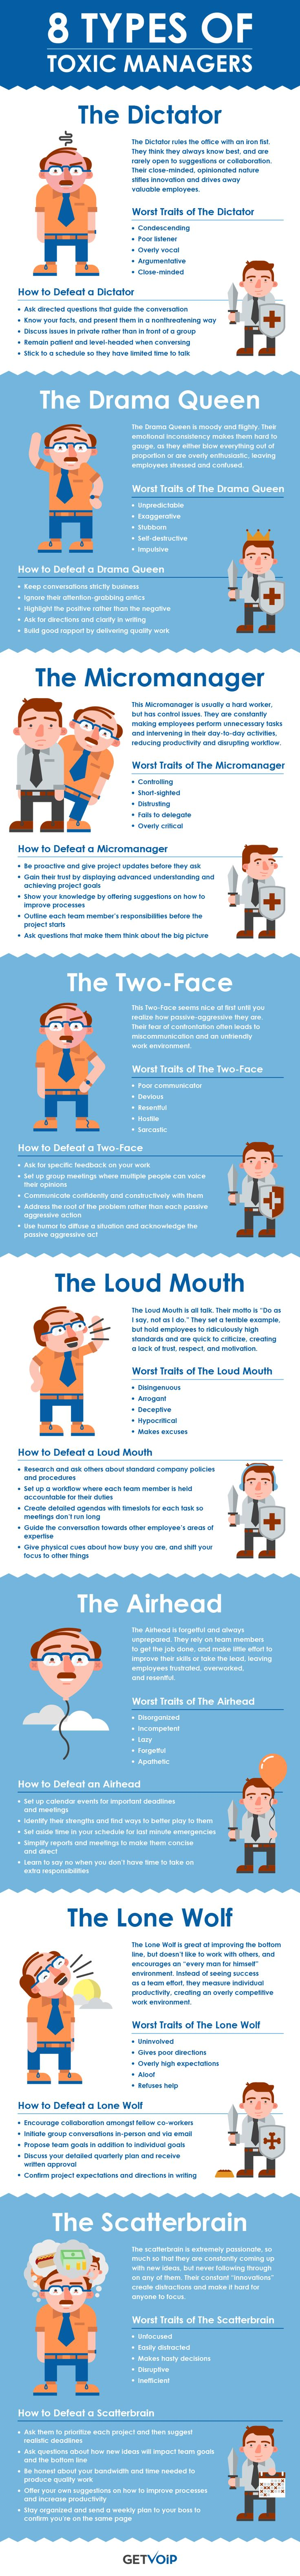 8 Types of Toxic Managers #infographic